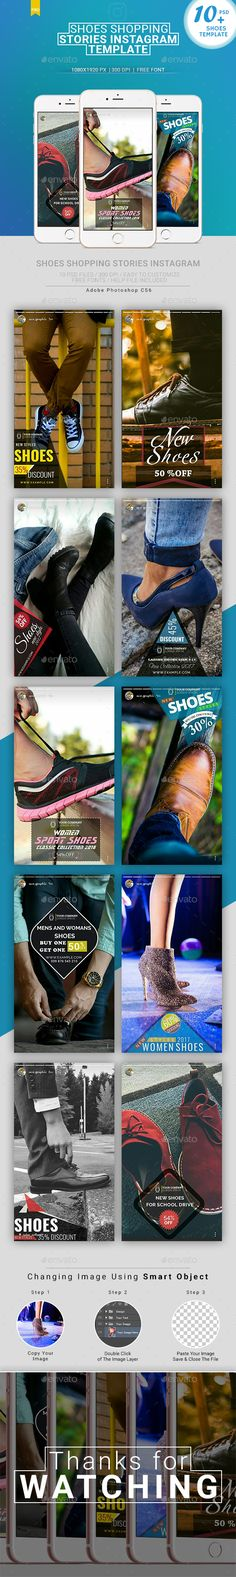 Instagram Stories - Shoes Shopping - Social Media Web Elements #ad Social Media Ad, Social Media Design, Social Media Graphics, Social Media Marketing, Instagram Banner, Media Web, Shoe Shop, Instagram Story, Ads